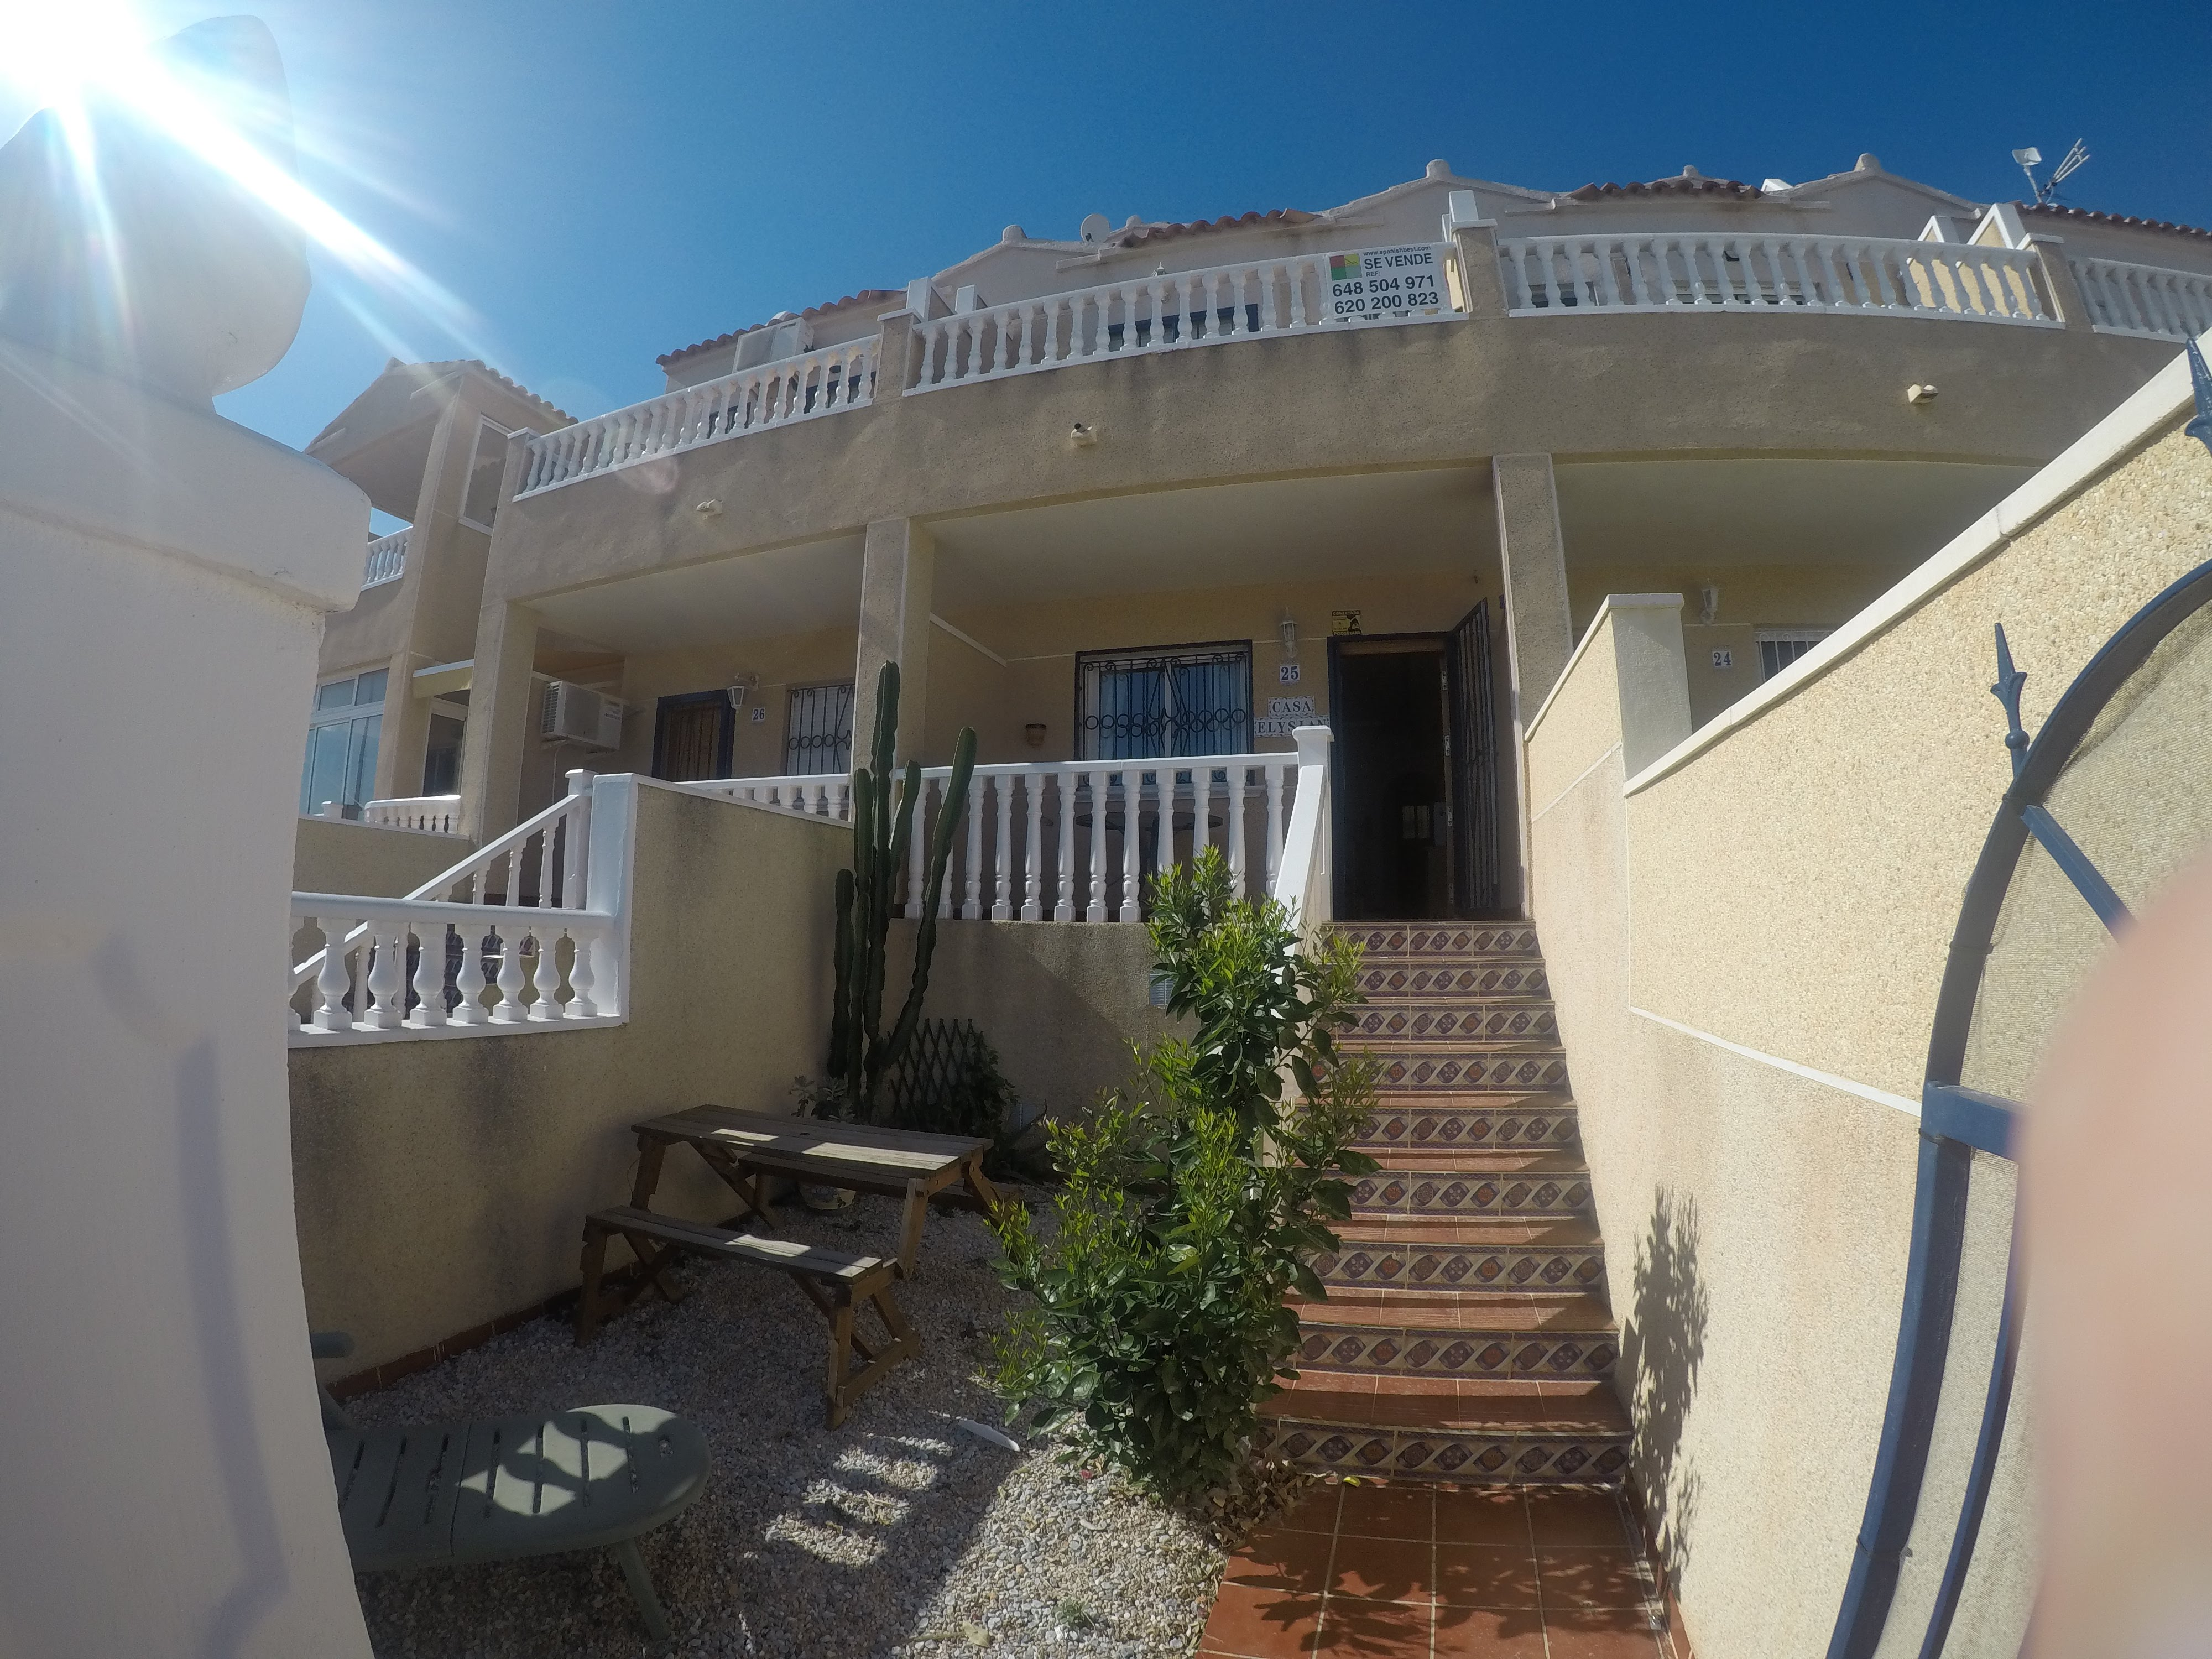 2 Bedroom   Townhouse   Alicante   For Sale